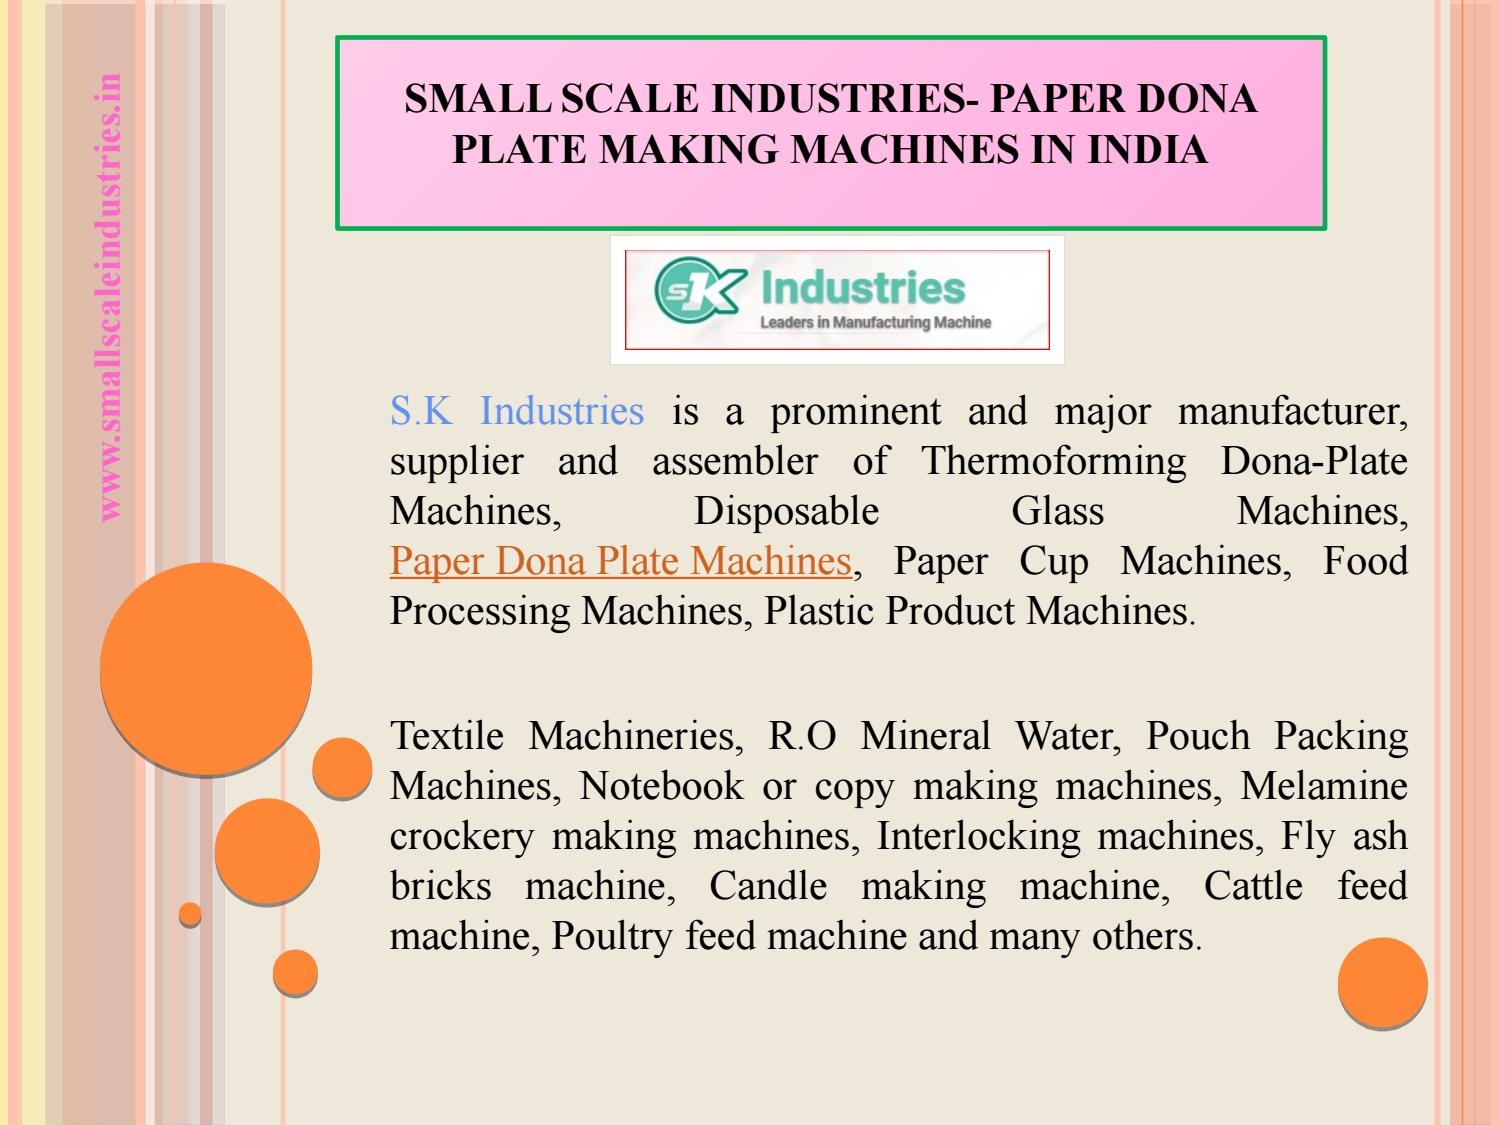 Small scale industries paper dona plate making machines in